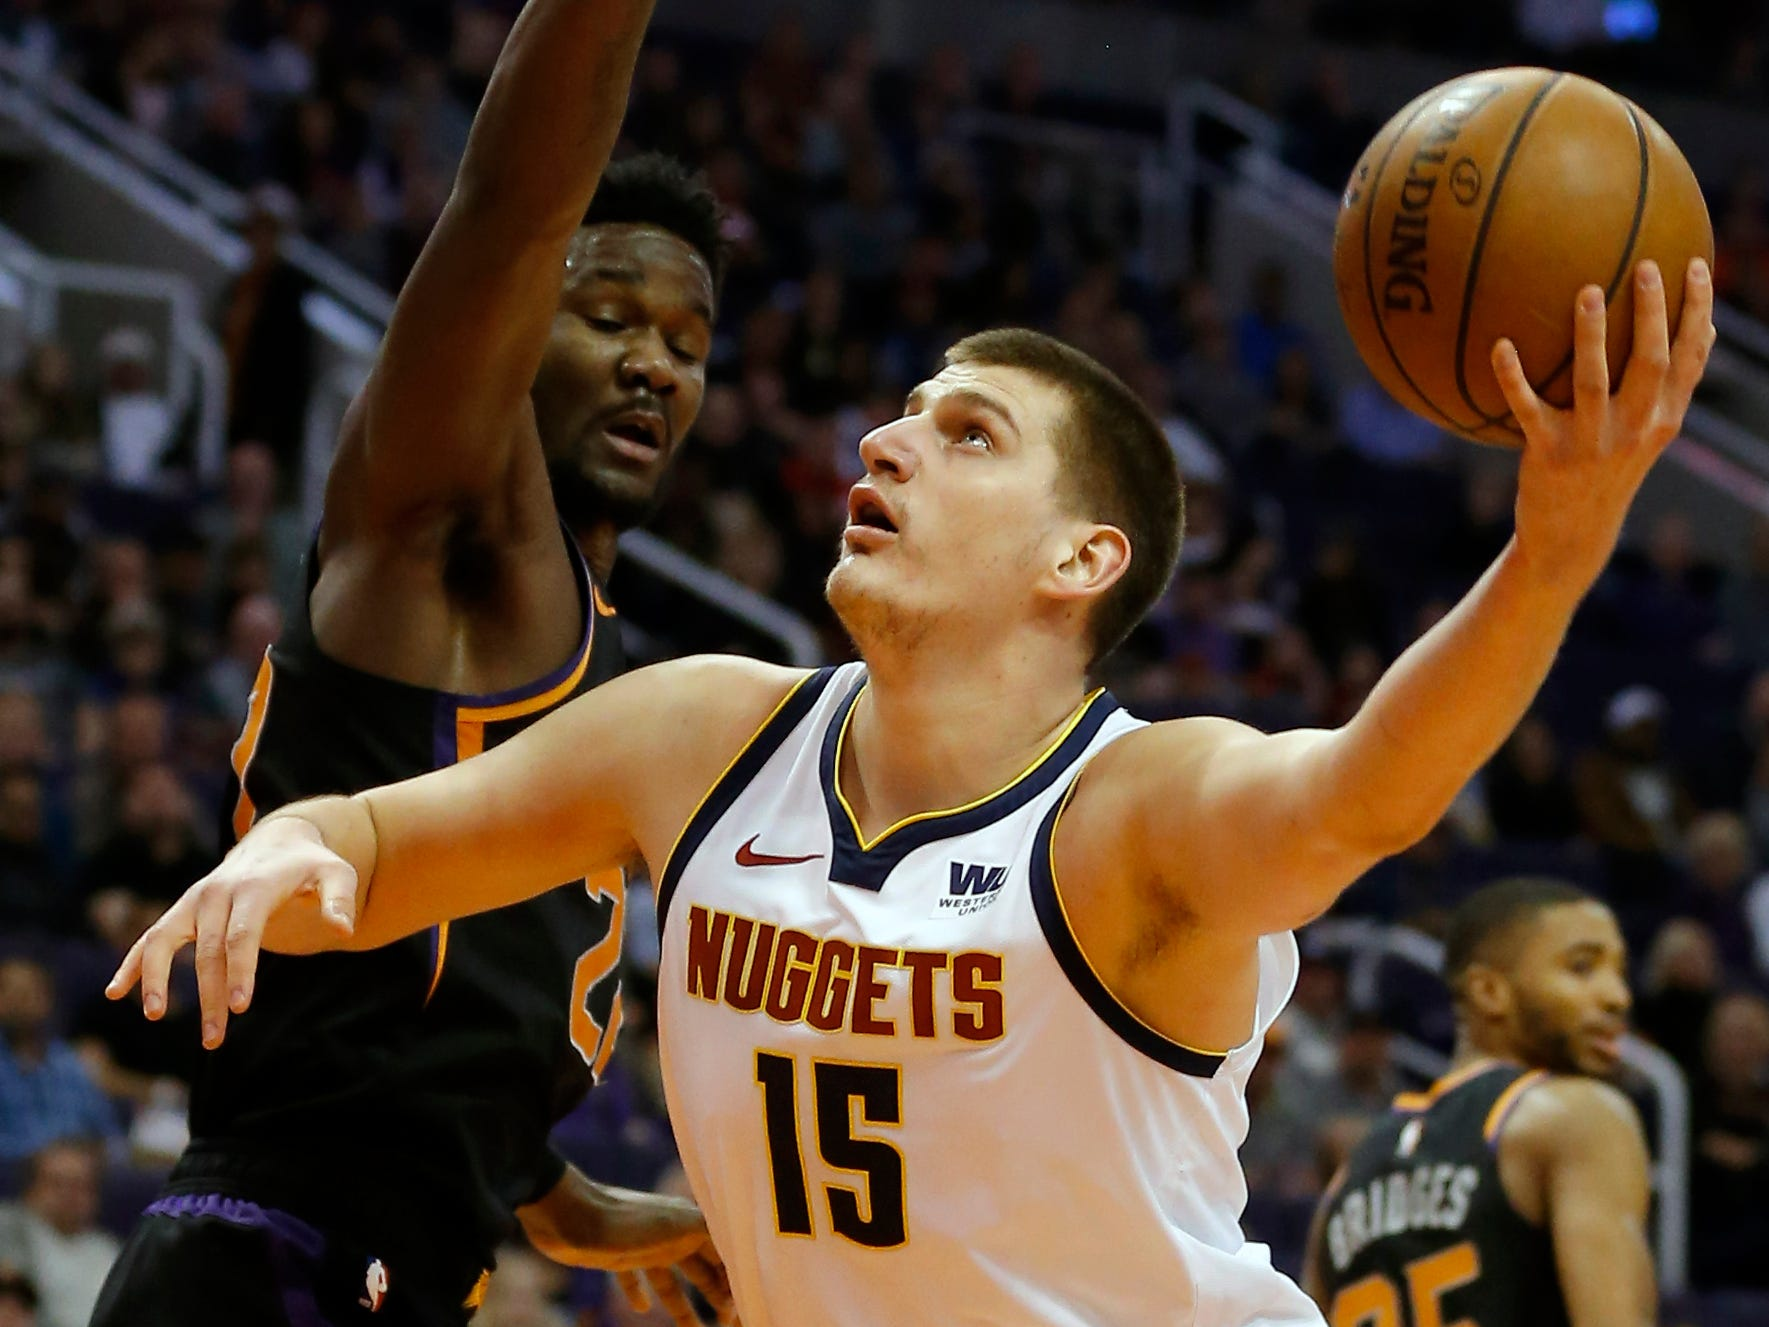 Denver Nuggets center Nikola Jokic (15) shoots around Phoenix Suns center Deandre Ayton, Saturday, Jan. 12, 2019, in Phoenix. (AP Photo/Rick Scuteri)